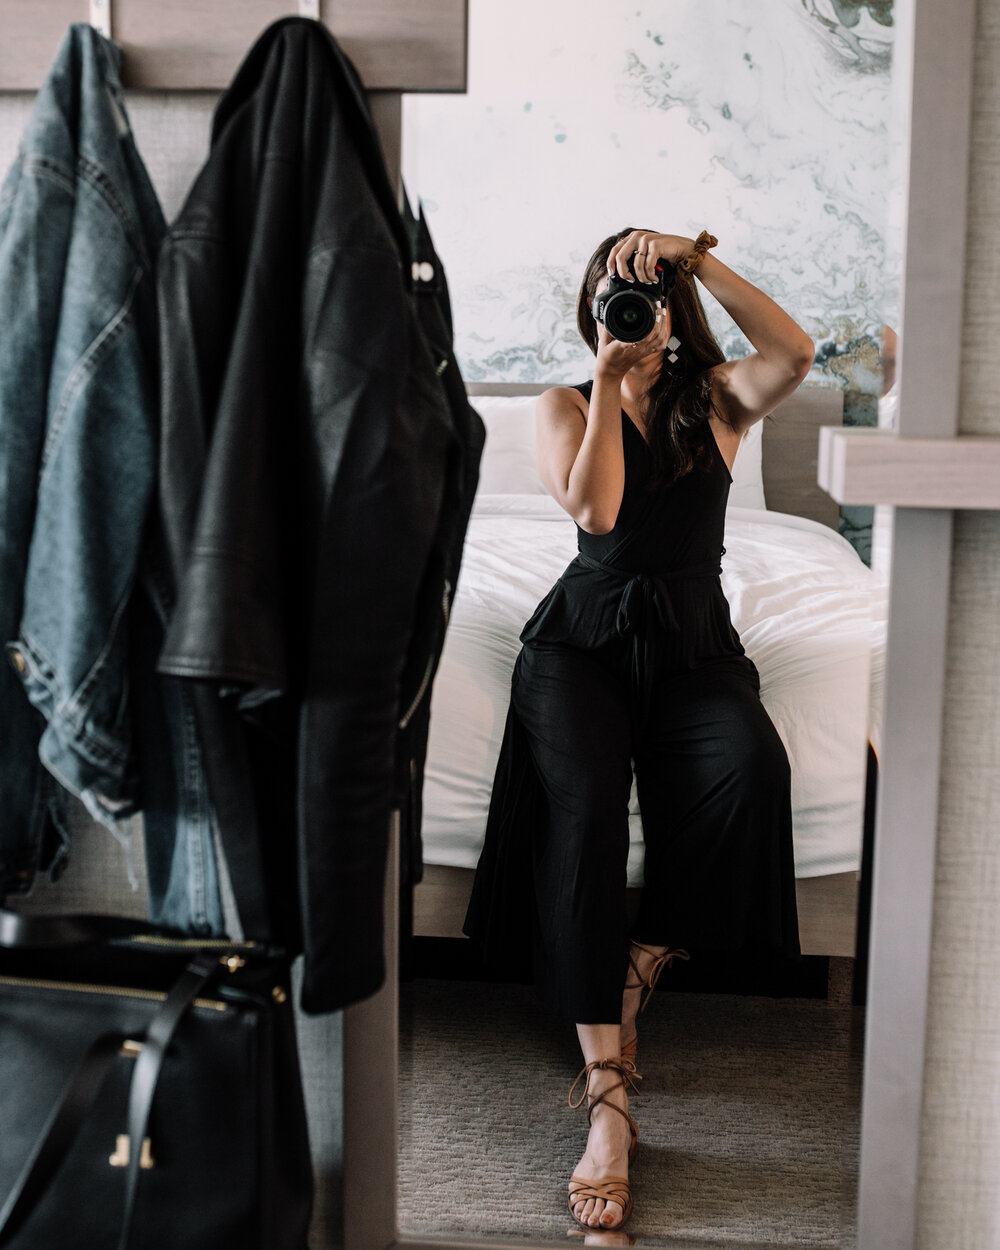 Rachel Off Duty: Woman Taking a Mirror Picture in a Hotel Room